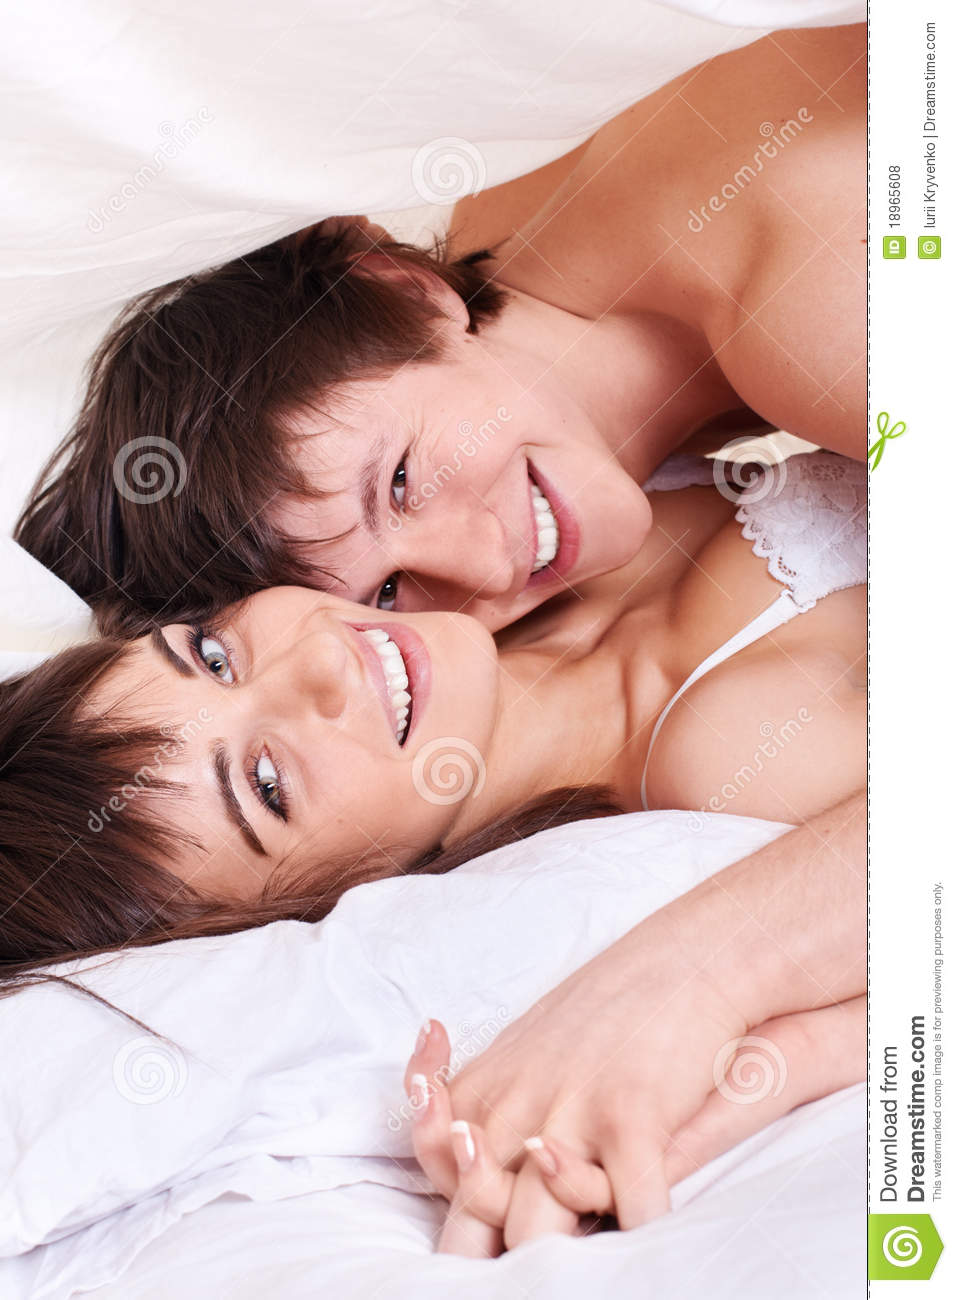 Couple Making Love In Bed Stock Photo Image Of Night